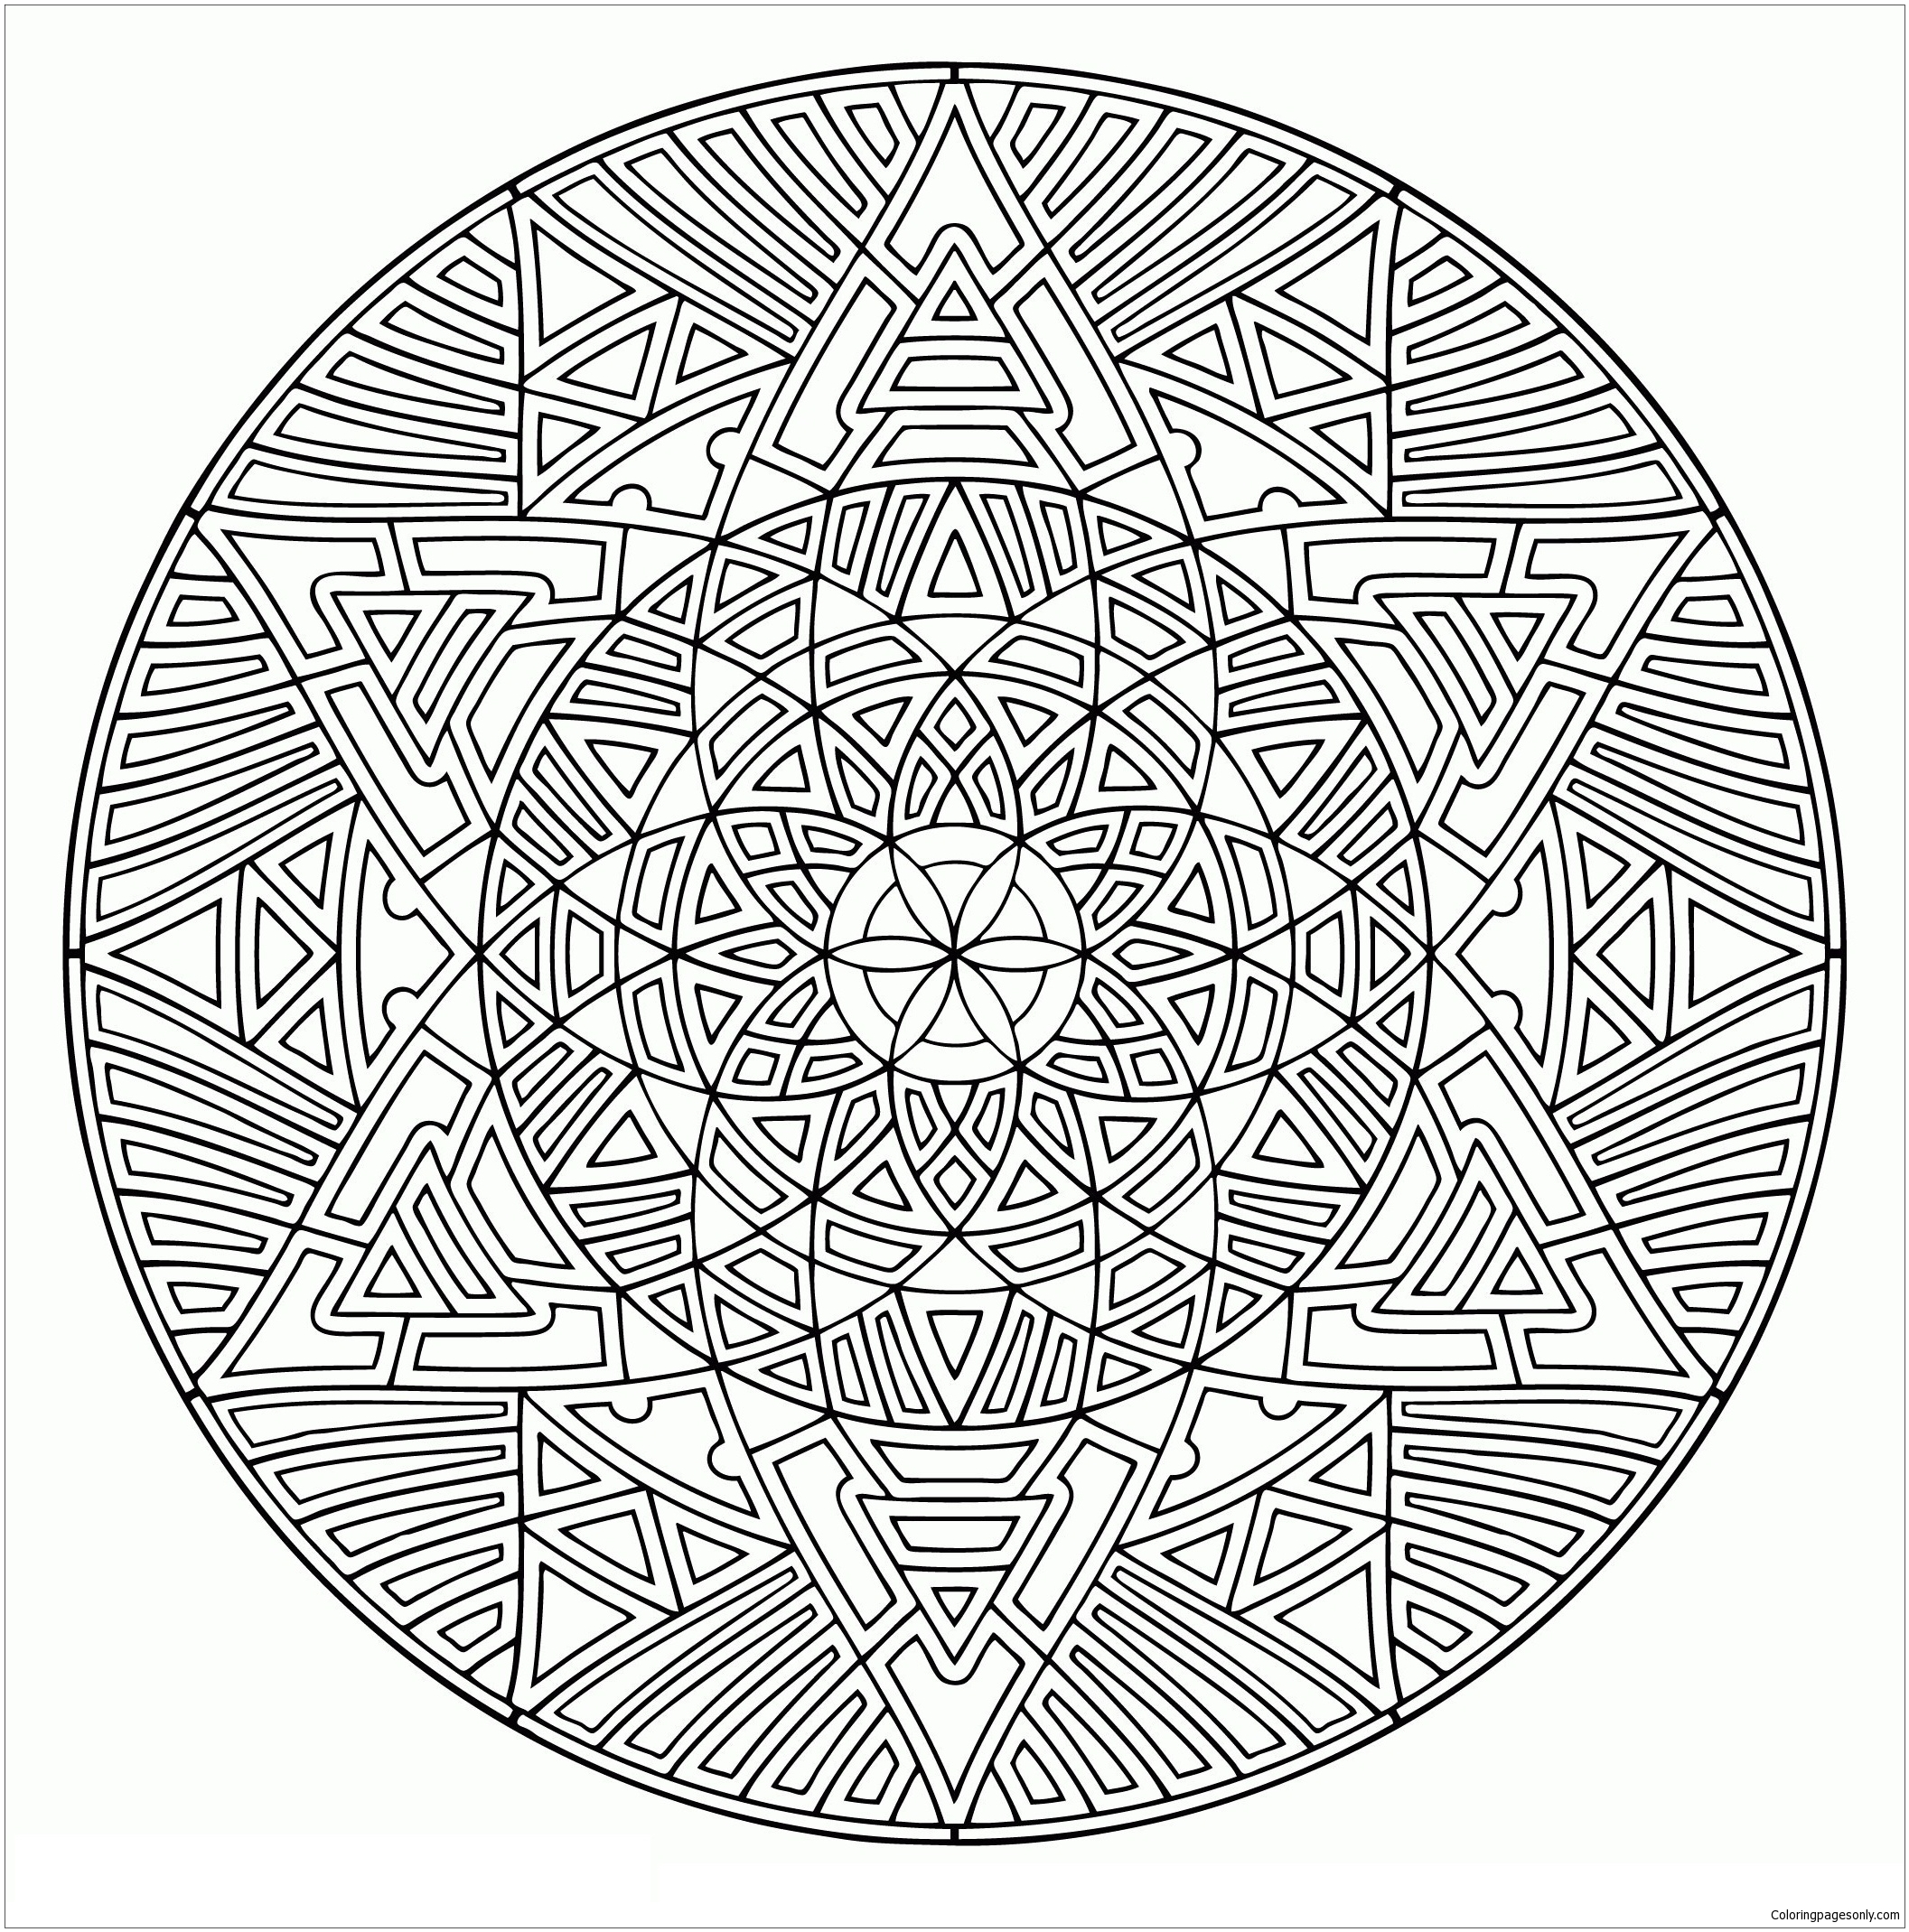 - Valid Mandala Coloring Page - Free Coloring Pages Online